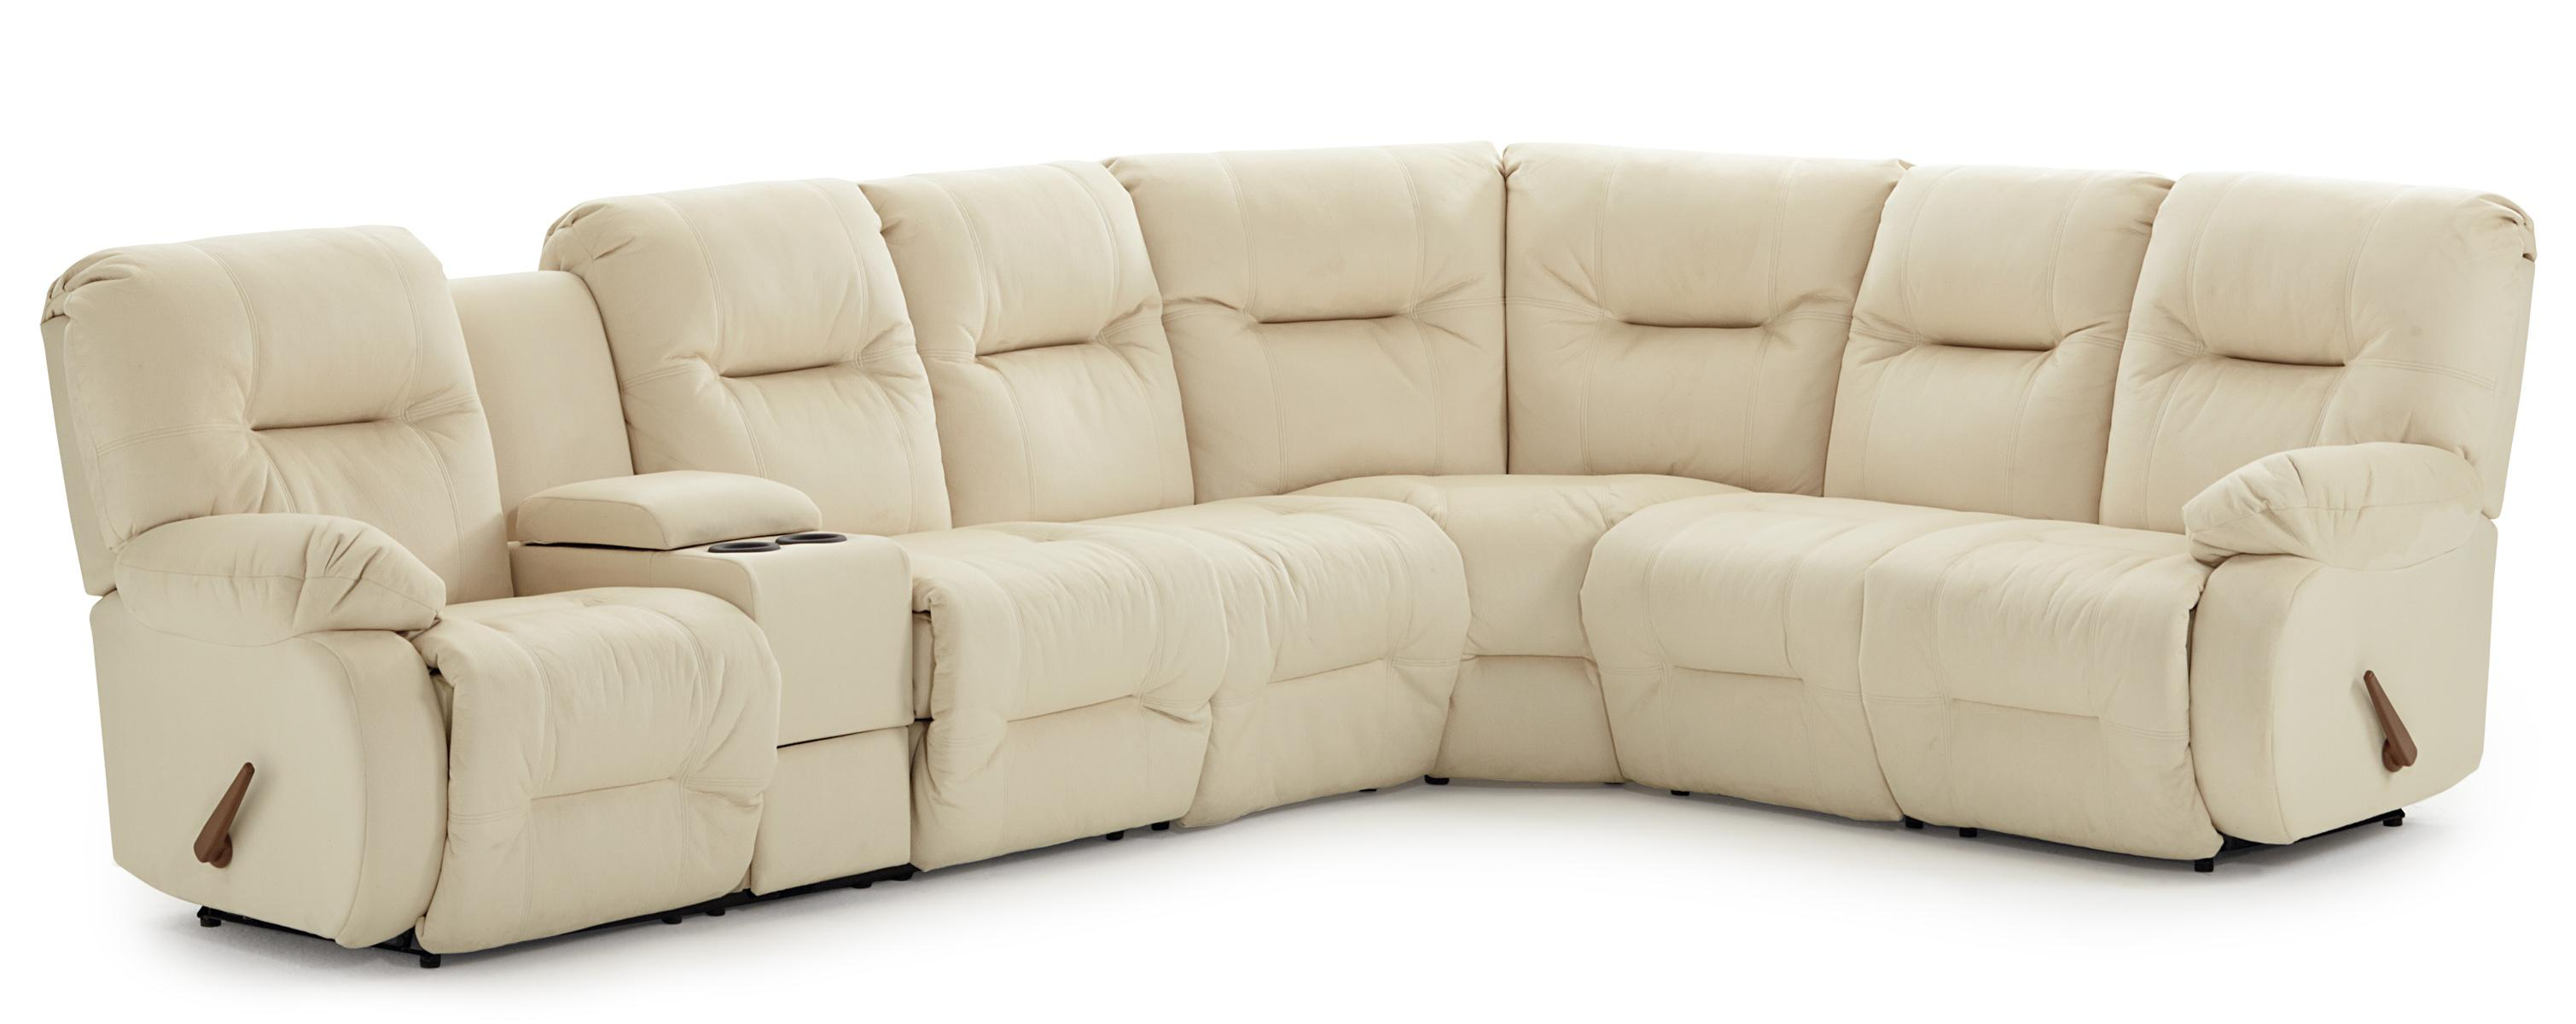 Best Home Furnishings Brinley 2 Casual Power Reclining